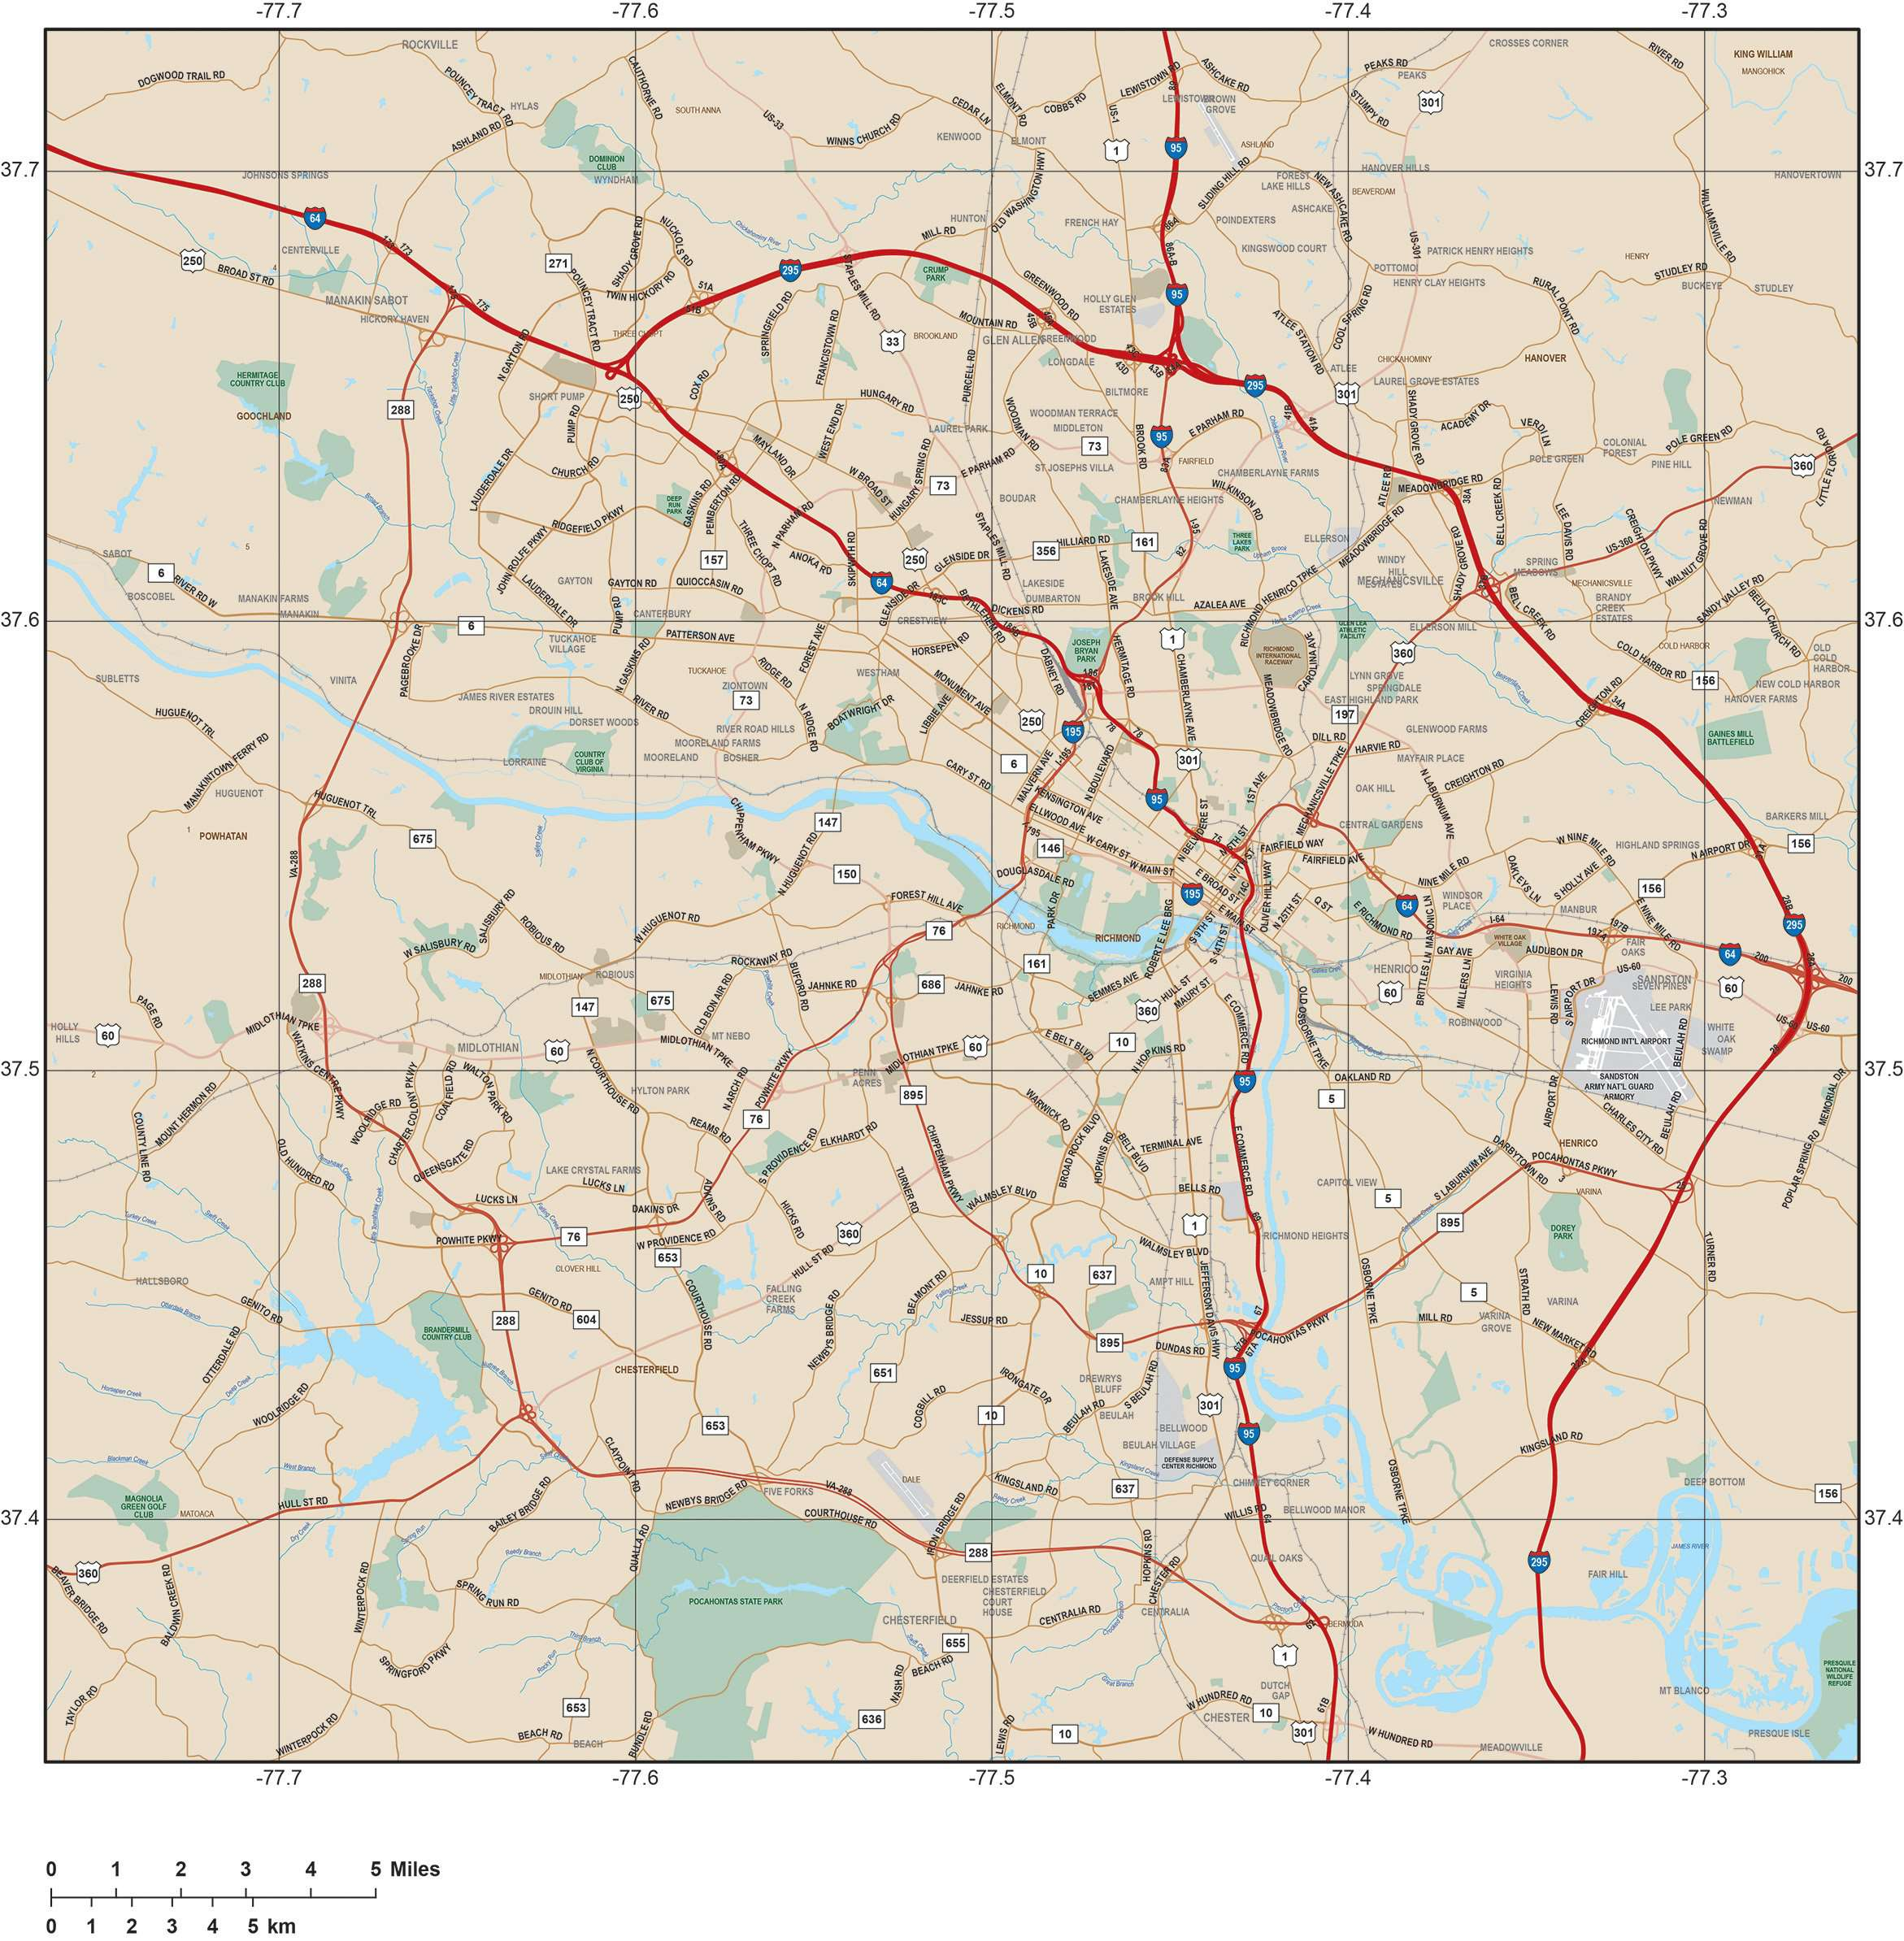 Richmond VA Map - Metro Area with Major Roads